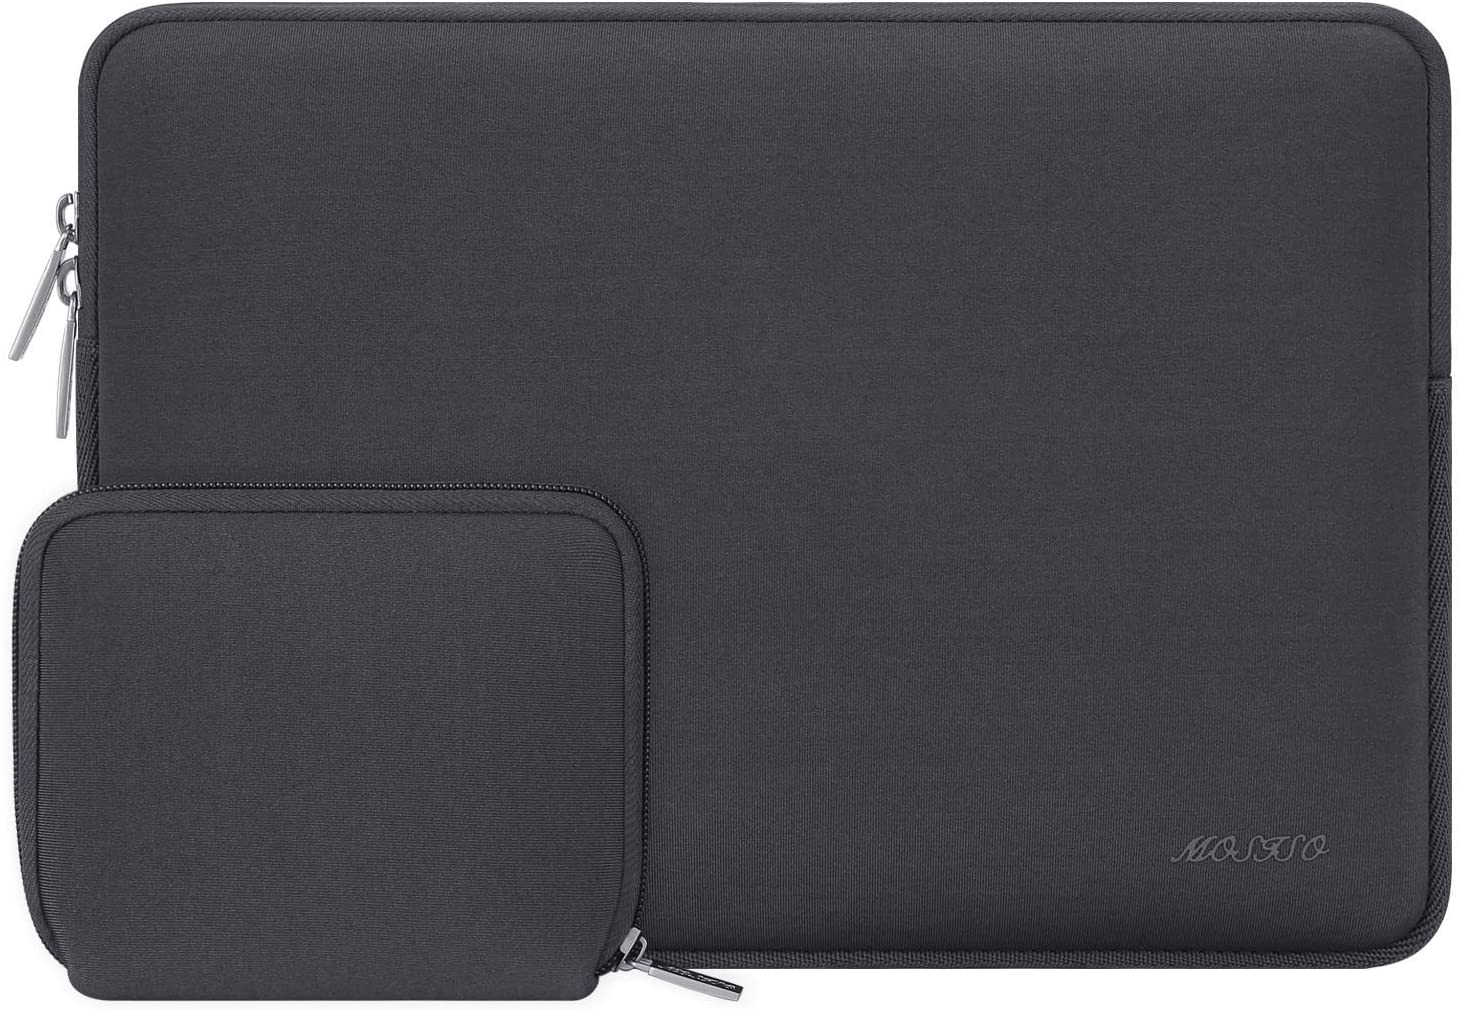 MOSISO Laptop Sleeve Compatible with 11.6-12.3 inch Acer Chromebook R11/HP Stream/Samsung/Lenovo/ASUS/MacBook Air 11/Surface Pro X/7/6/5/4/3, Water Repellent Neoprene Bag with Small Case, Space Gray